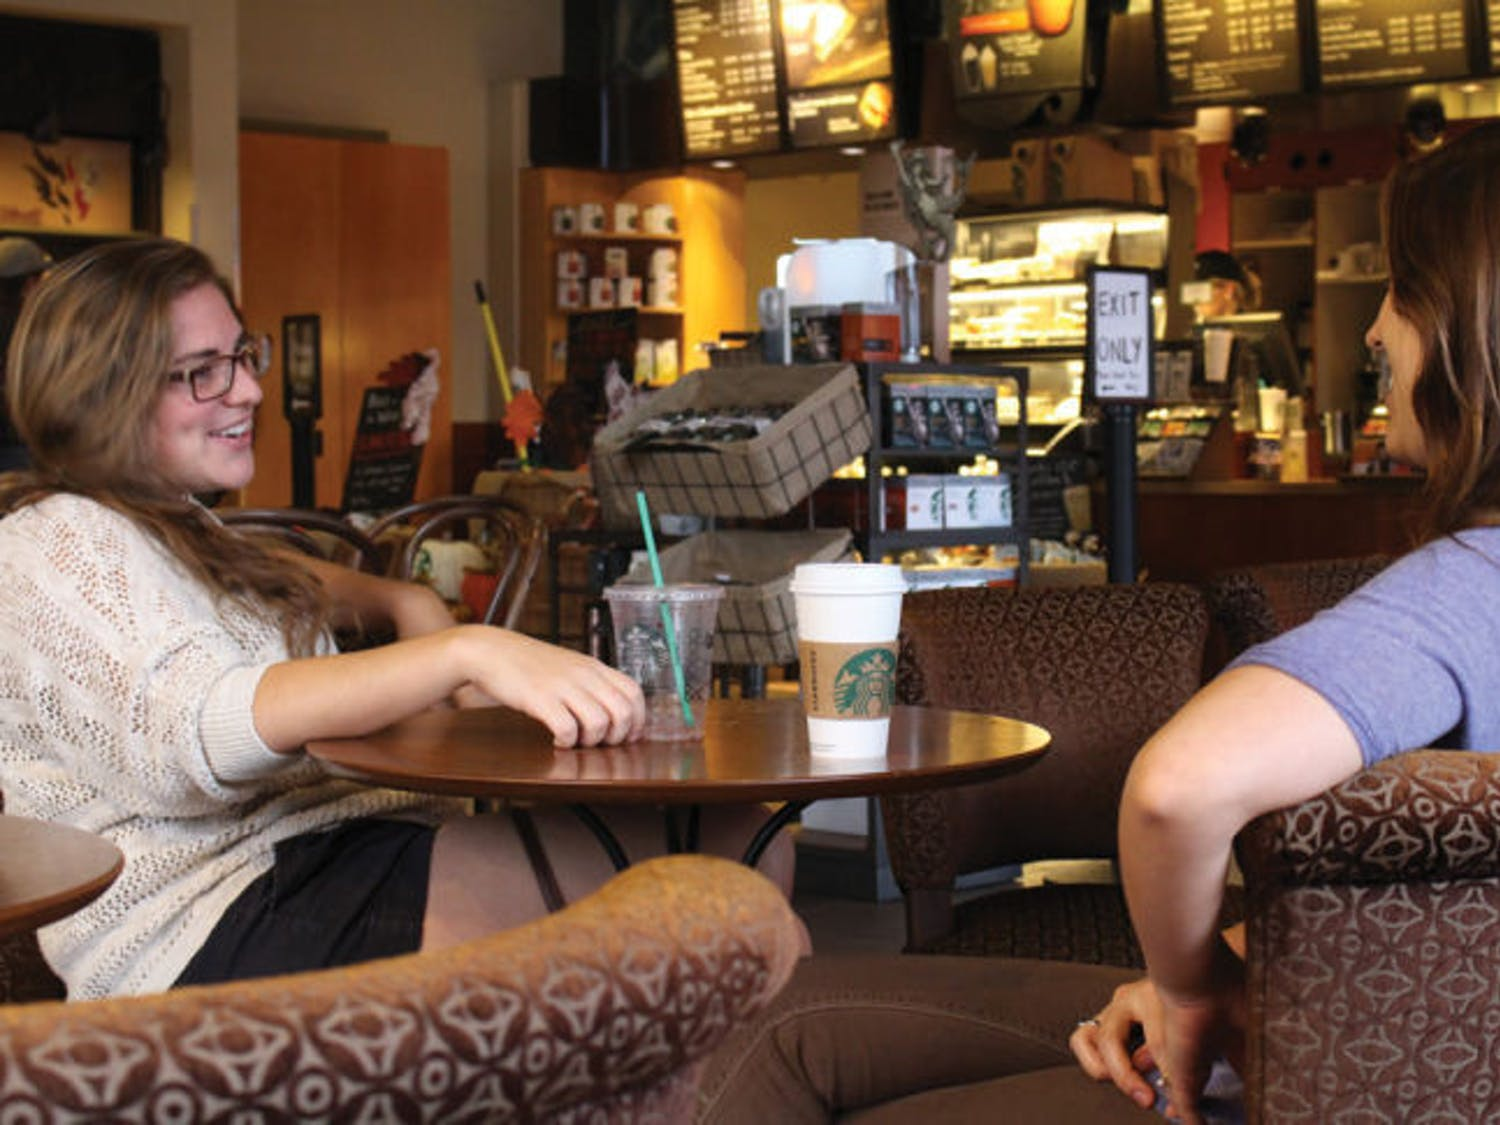 UF economics senior Kerri Stern, 21, left, talks with Gainesville resident Sophie Ouellette-Howitz, 23, Monday at the downtown Starbucks. Starbucks recently asked customers not to bring firearms into its stores.